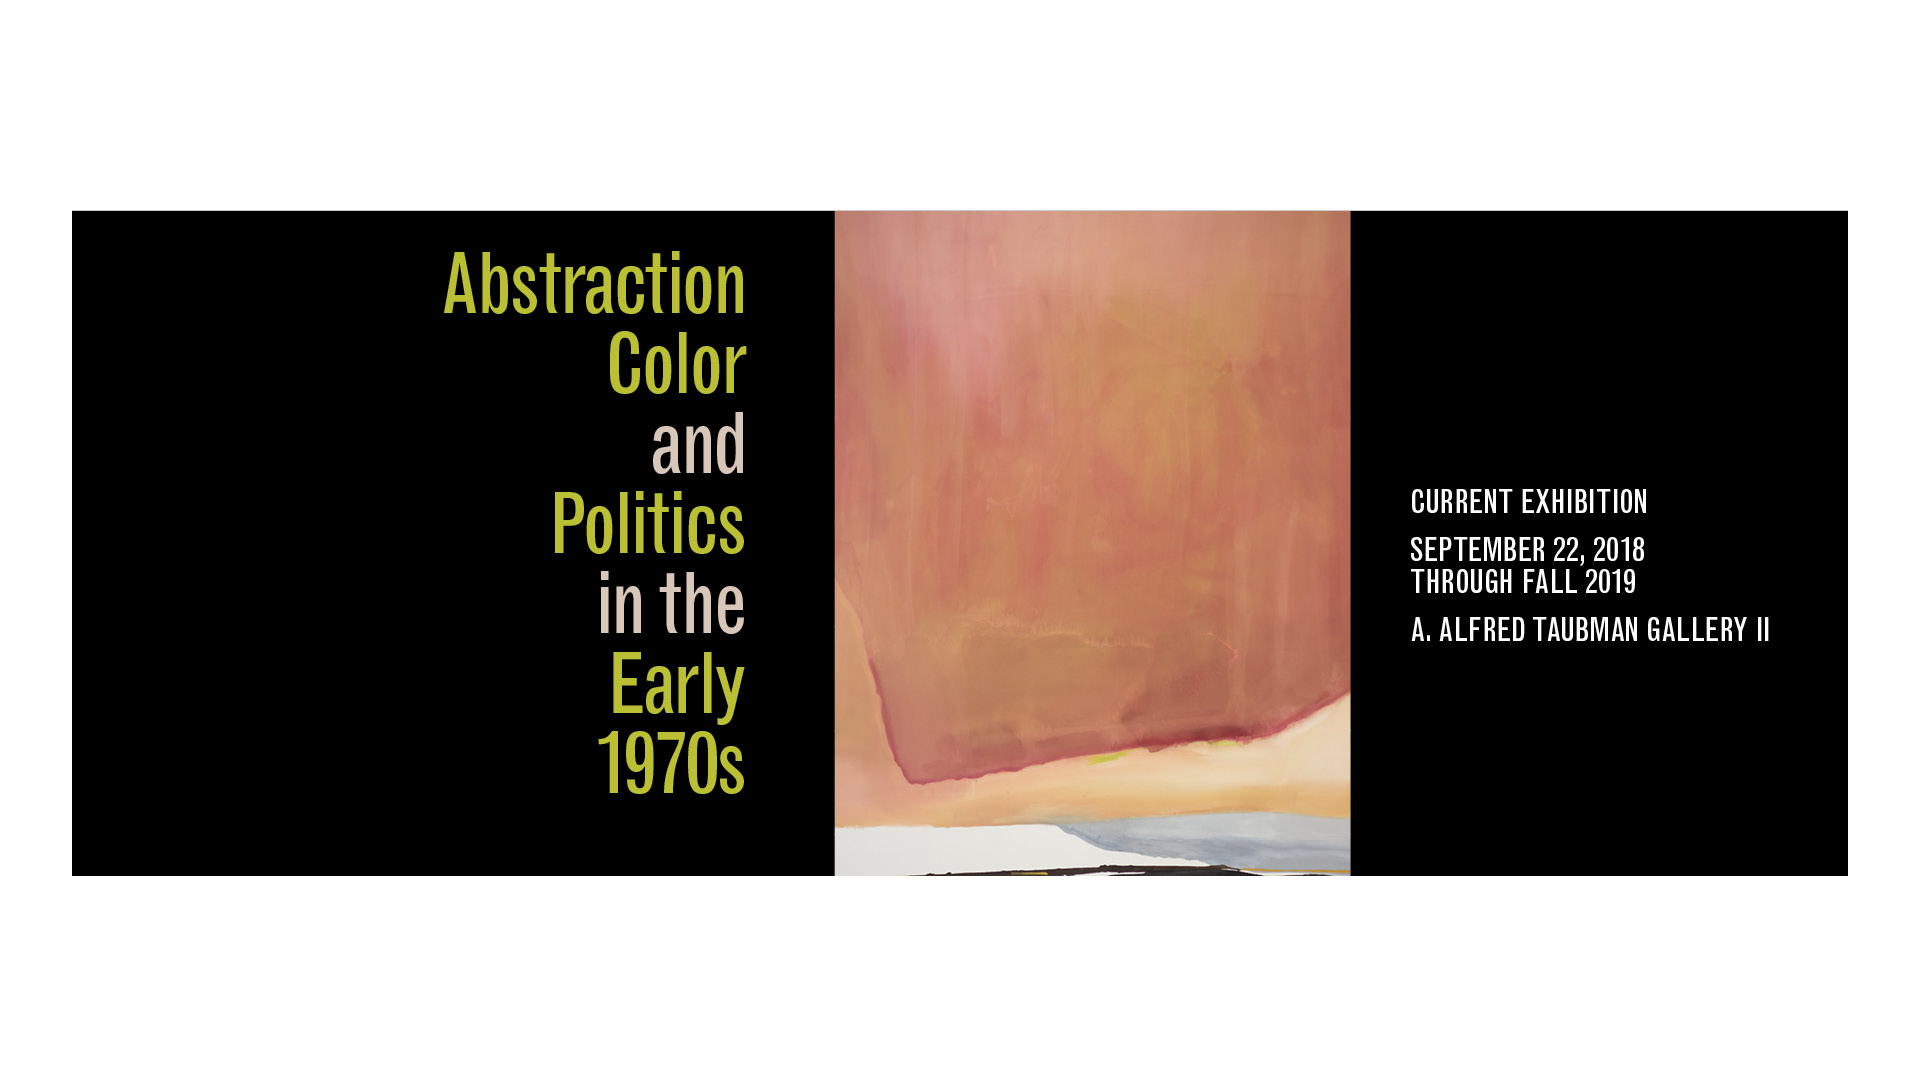 Abstraction, Color, and Politics in the Early 1970s